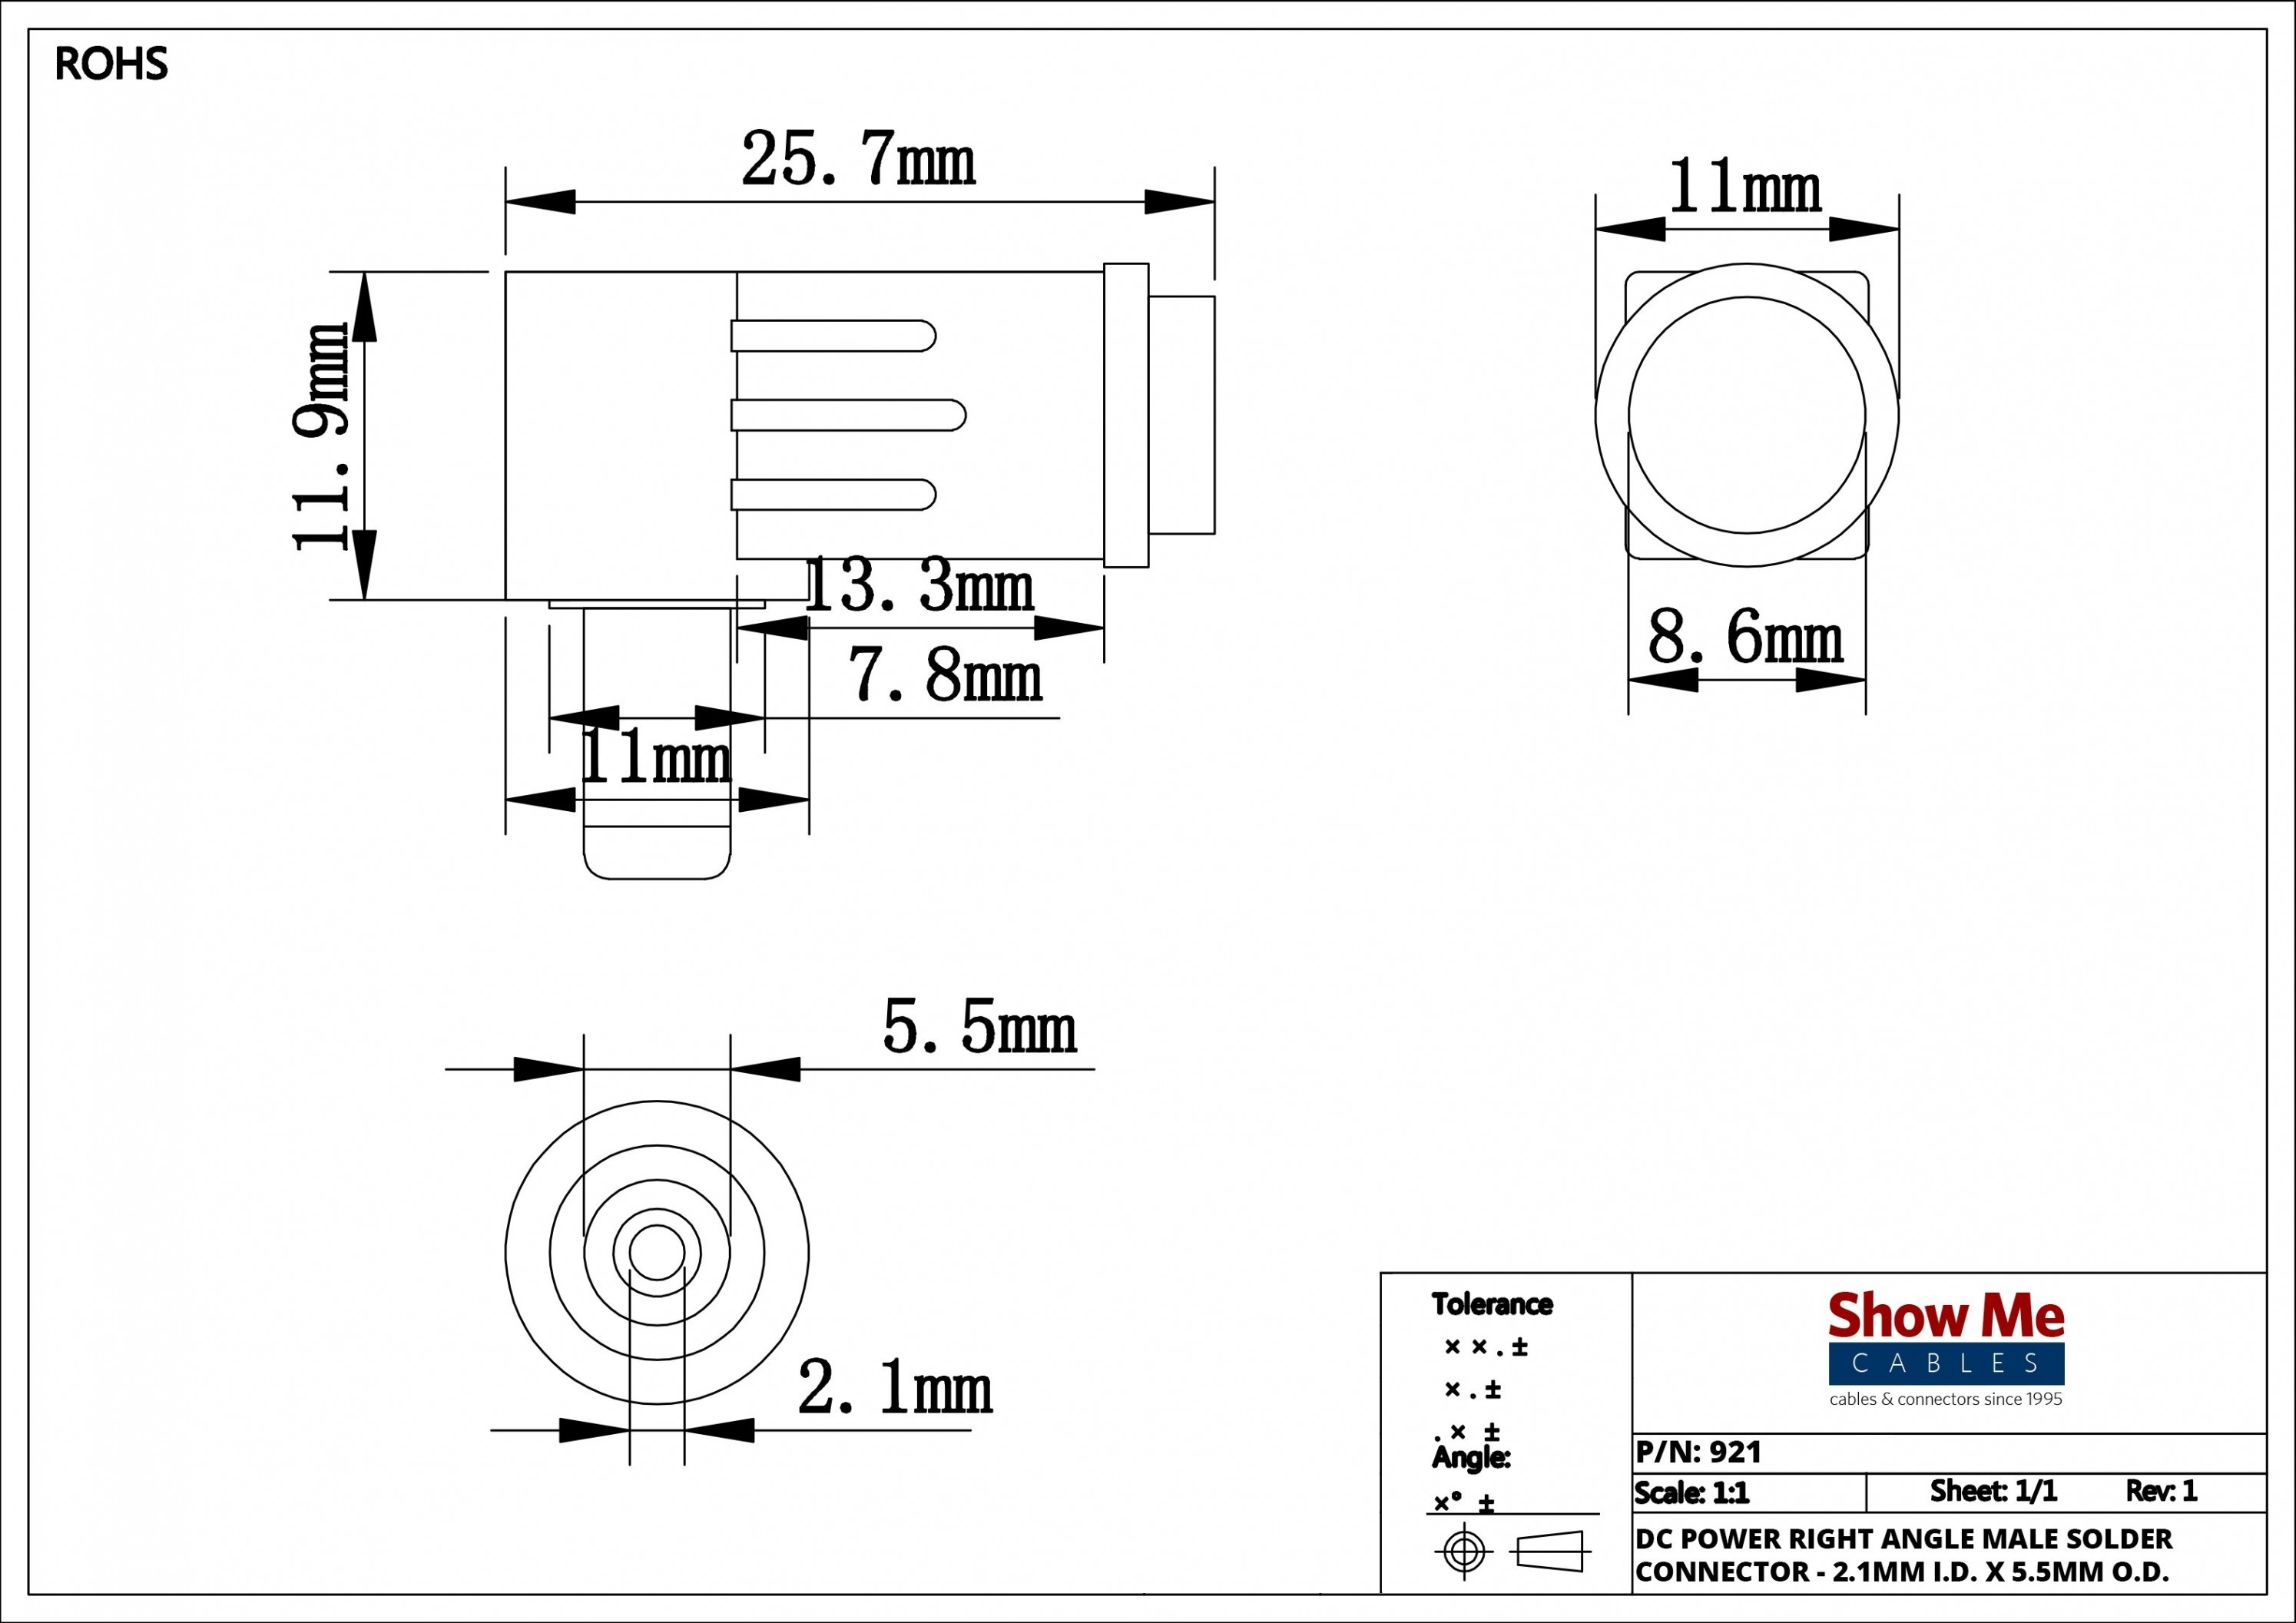 telephone terminal block wiring diagram Download-3 5 Mm Jack Wiring Diagram Fresh 2 5mm Id 5 5mm Od Power Connector 14-h